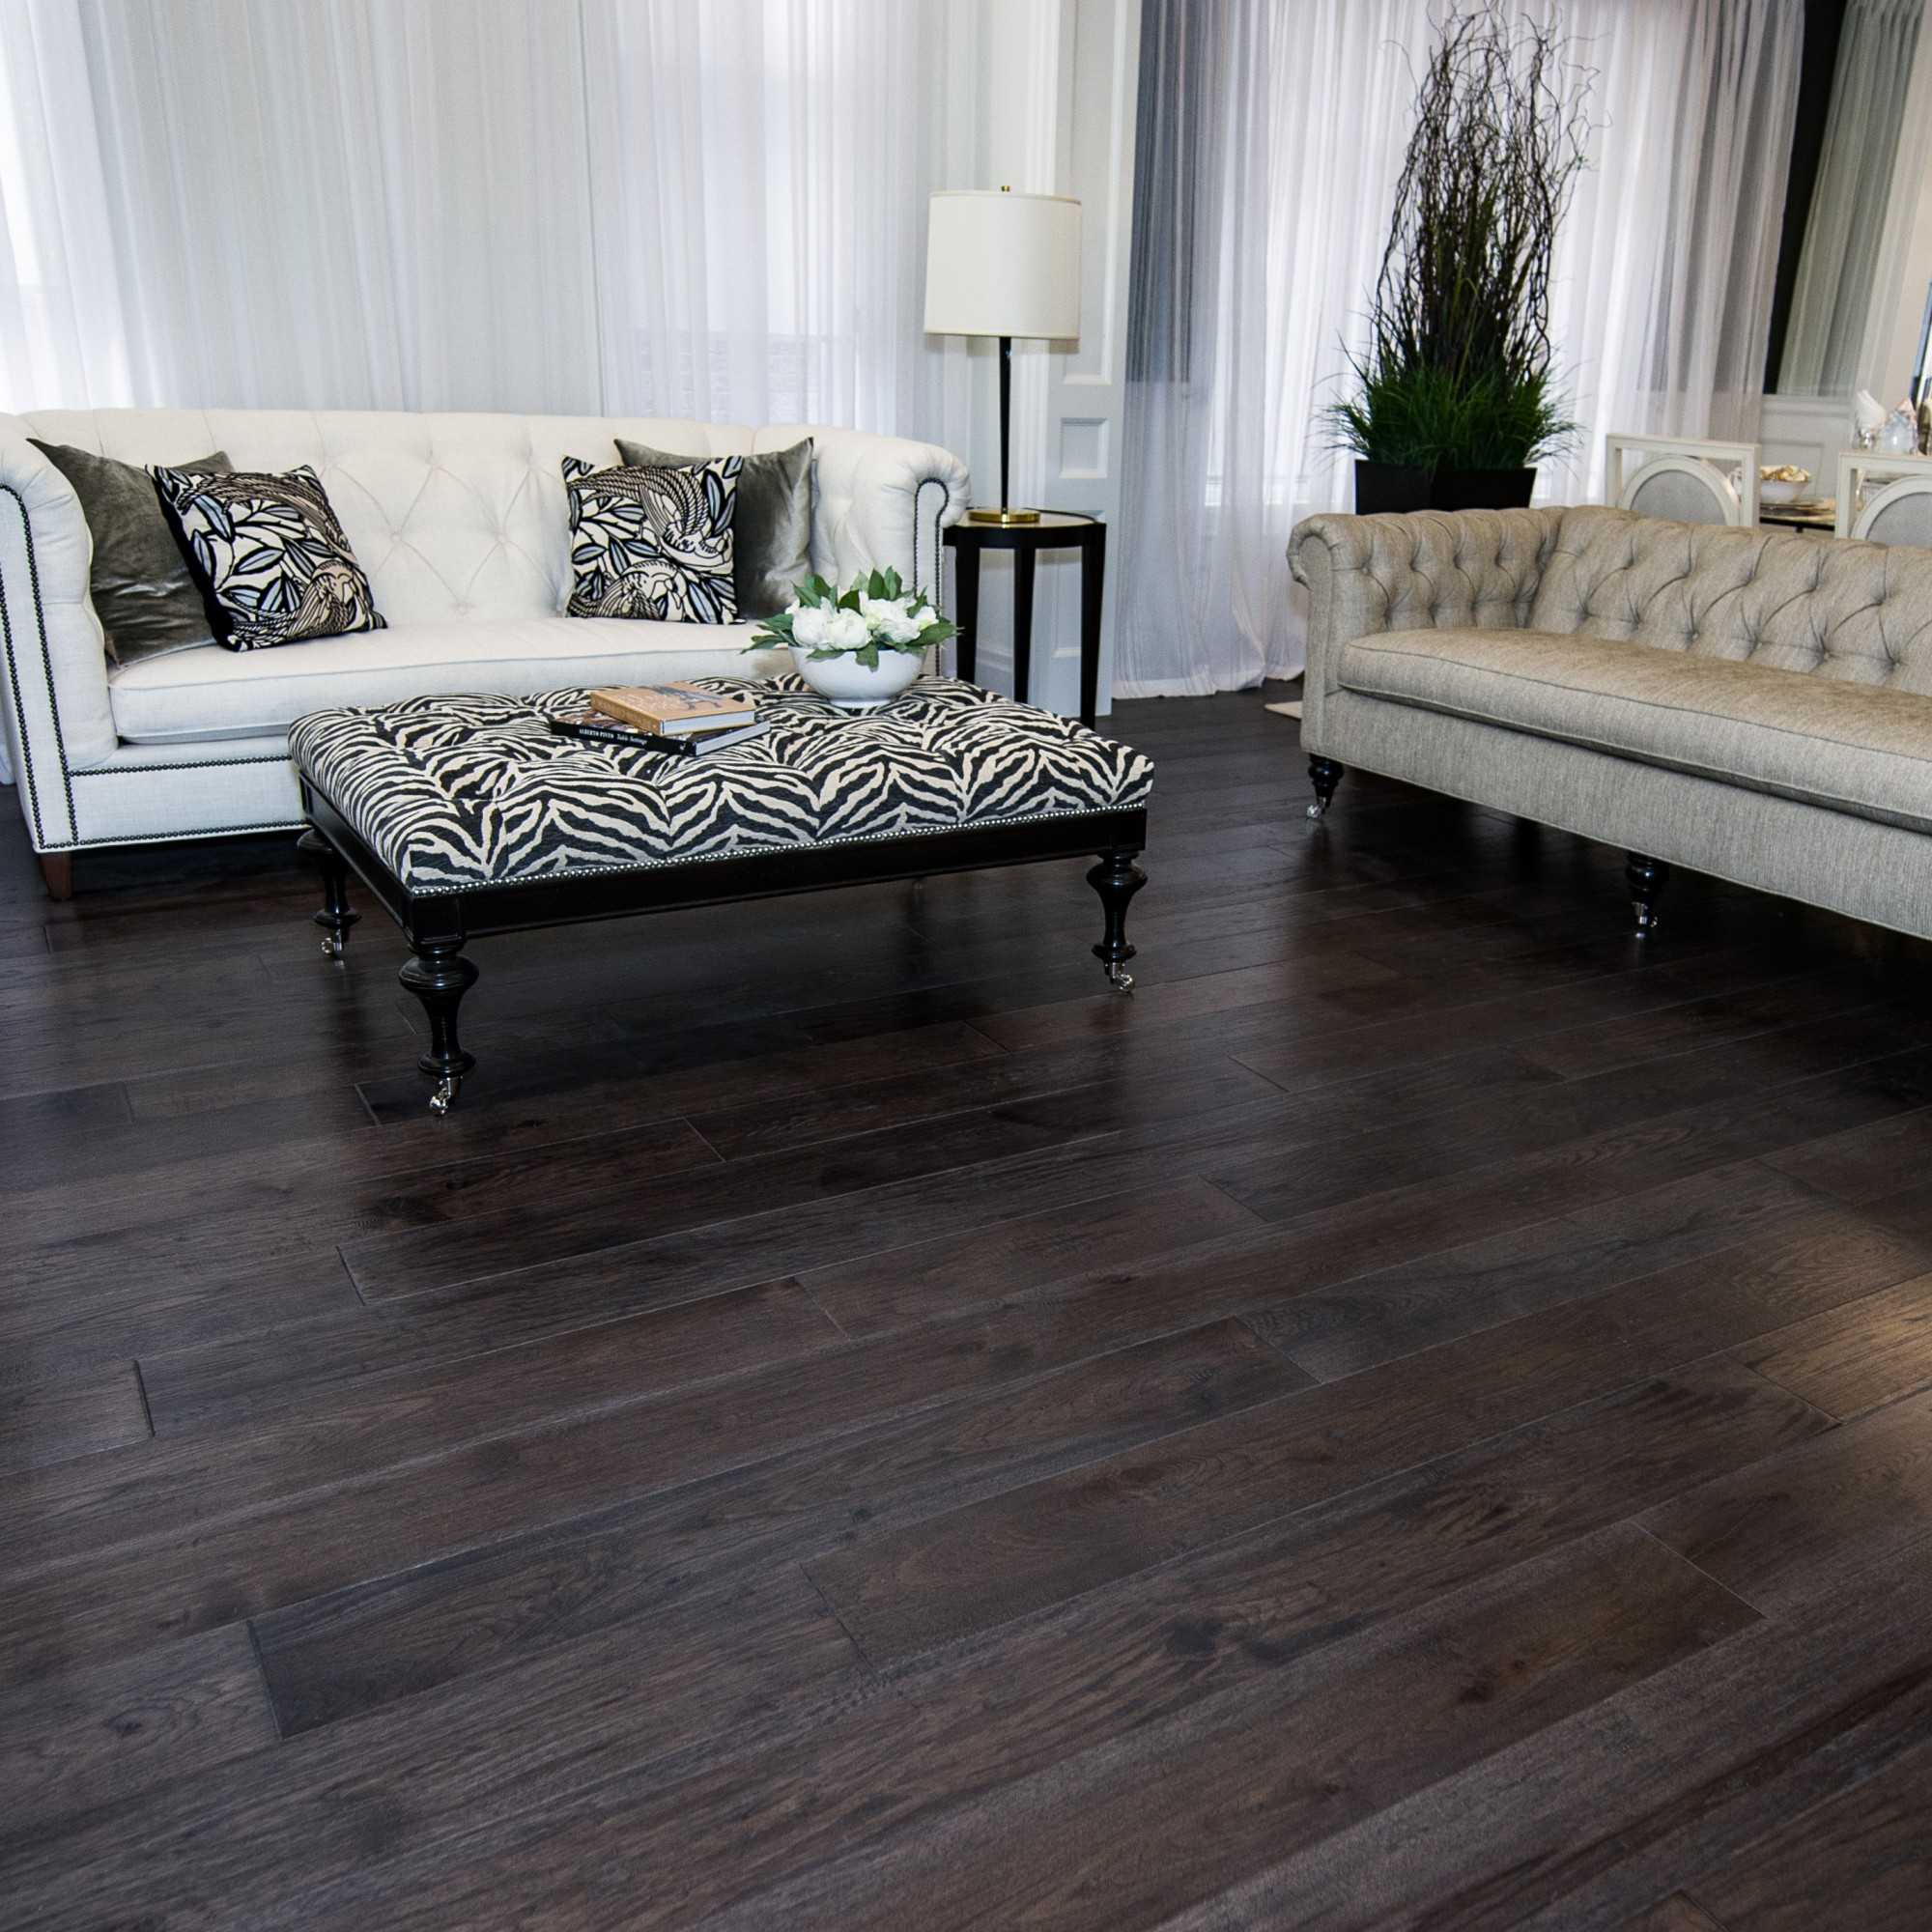 Hand Scraped Maple Oxford By Vintage Hardwood Flooring: Hand Scraped, Hickory Mesquite